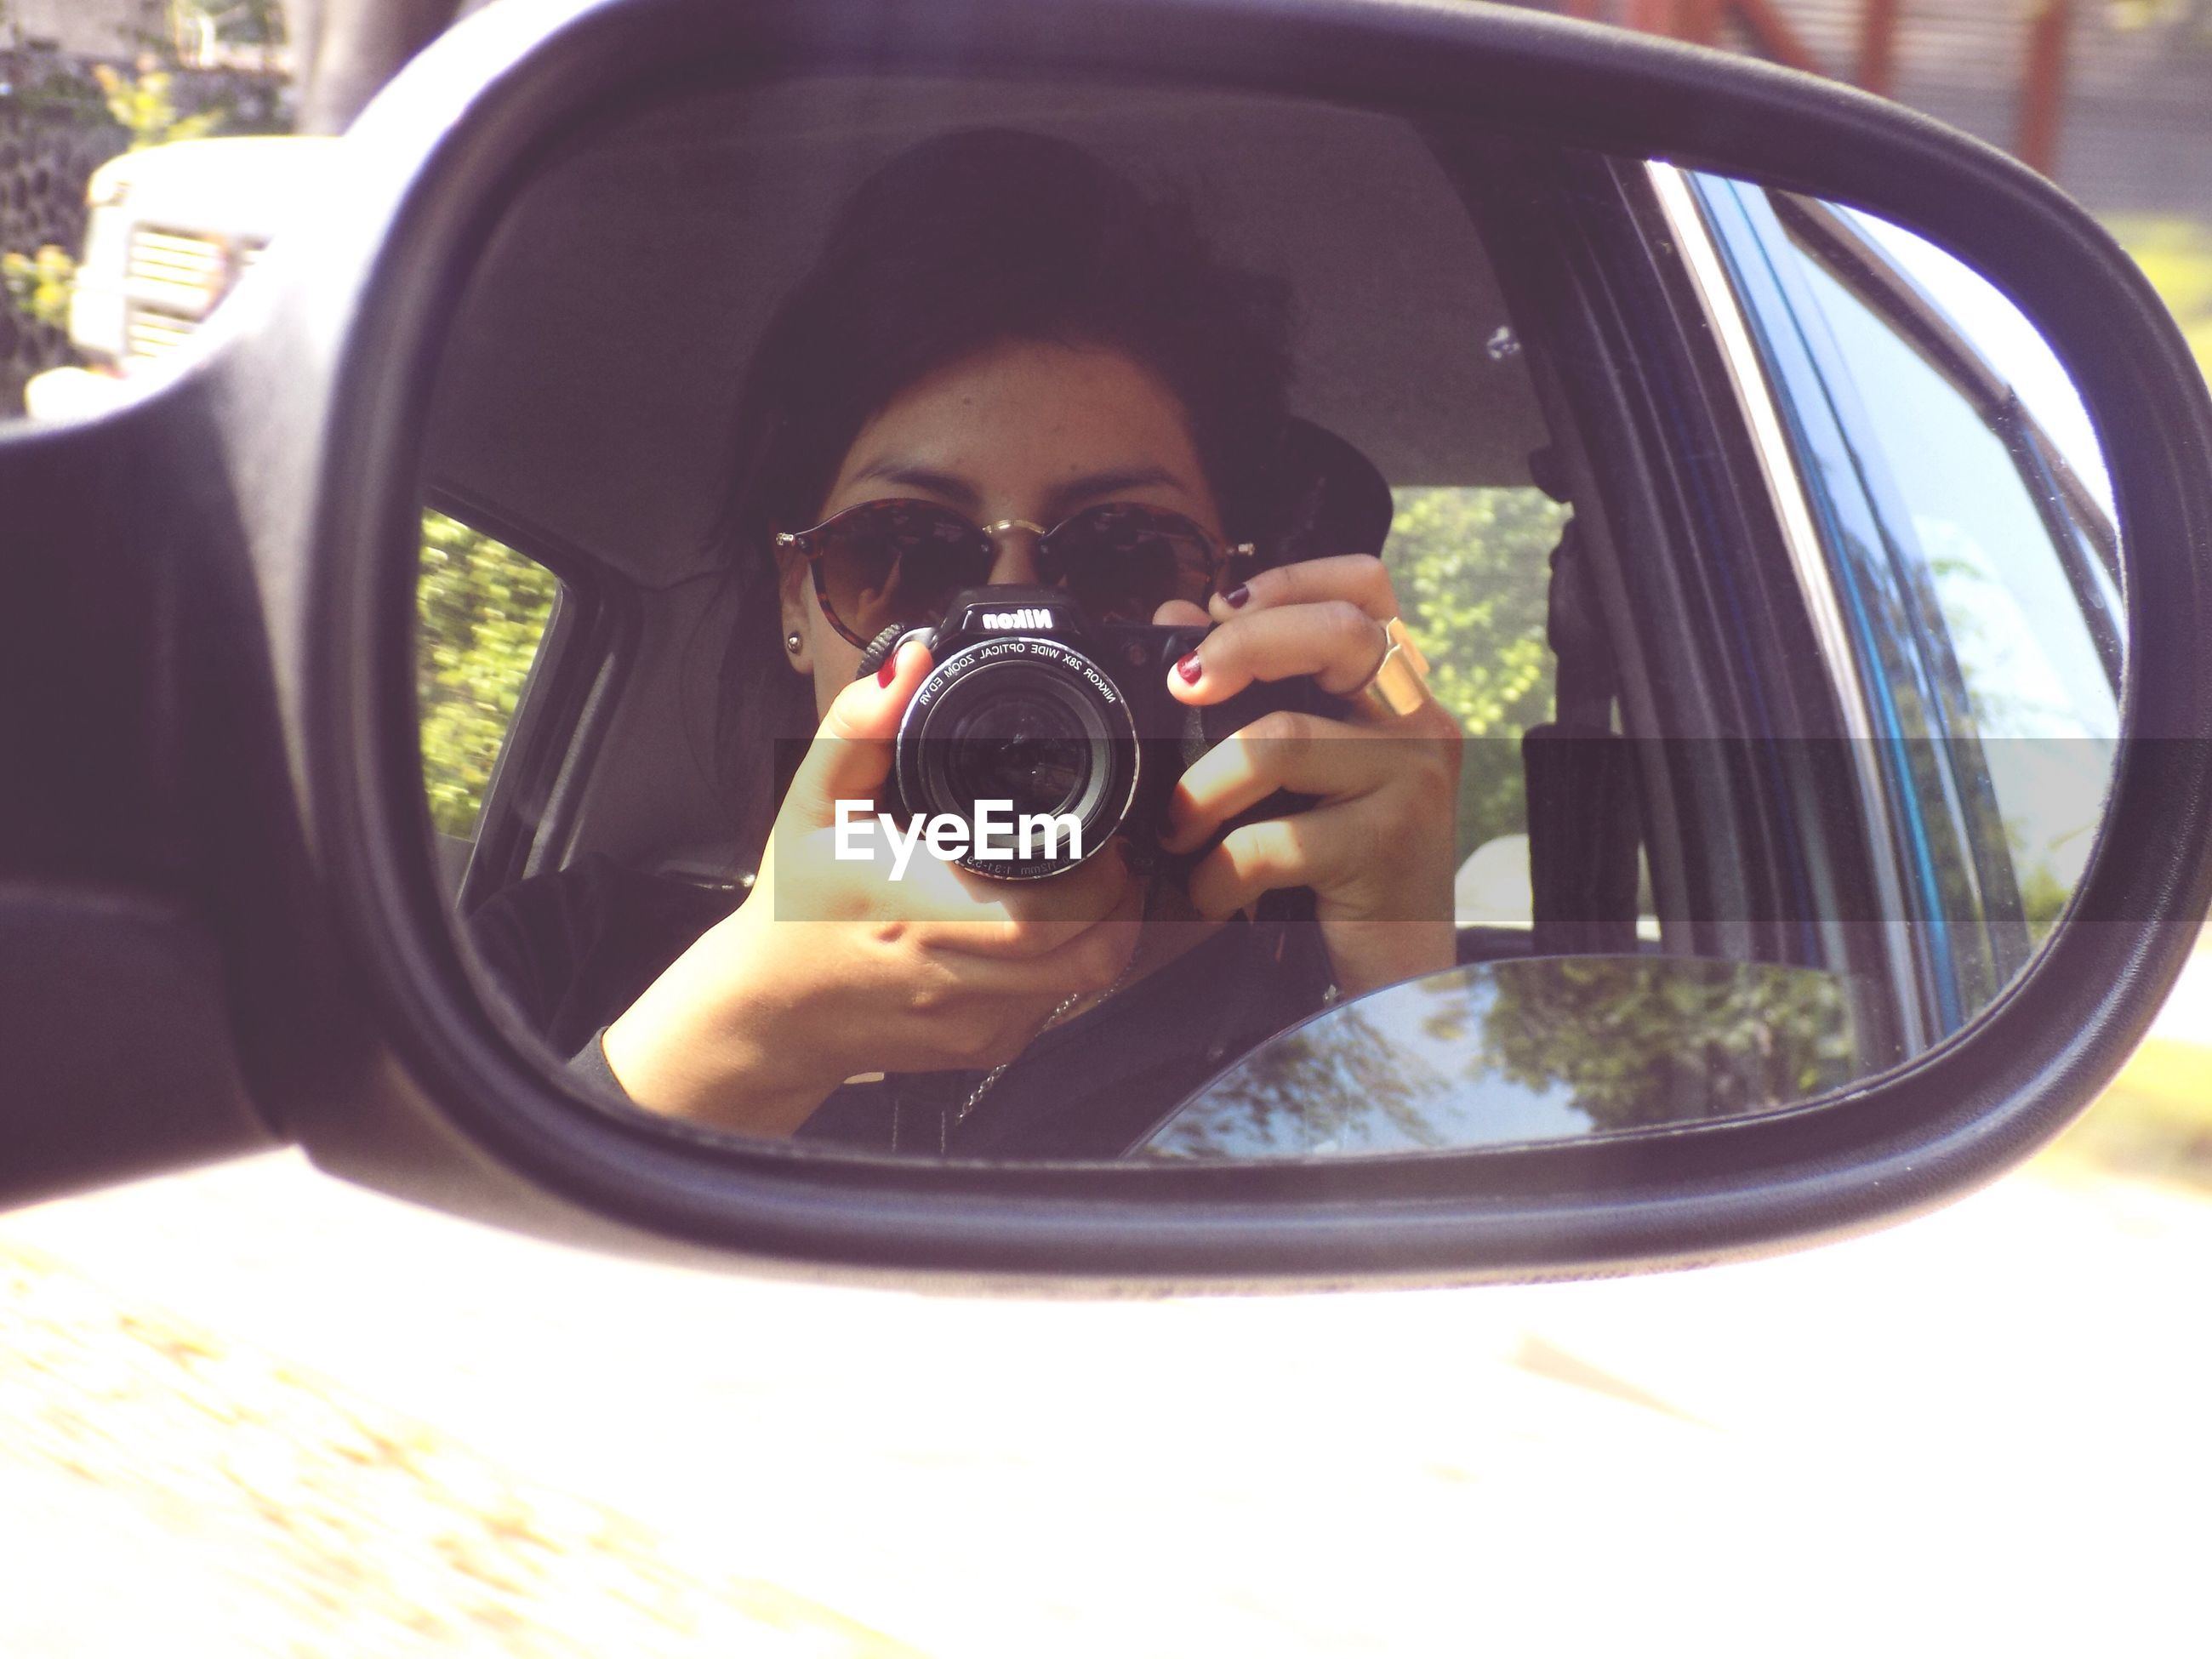 land vehicle, car, transportation, mode of transport, side-view mirror, reflection, sunglasses, vehicle interior, car interior, holding, person, part of, glass - material, close-up, cropped, lifestyles, leisure activity, transparent